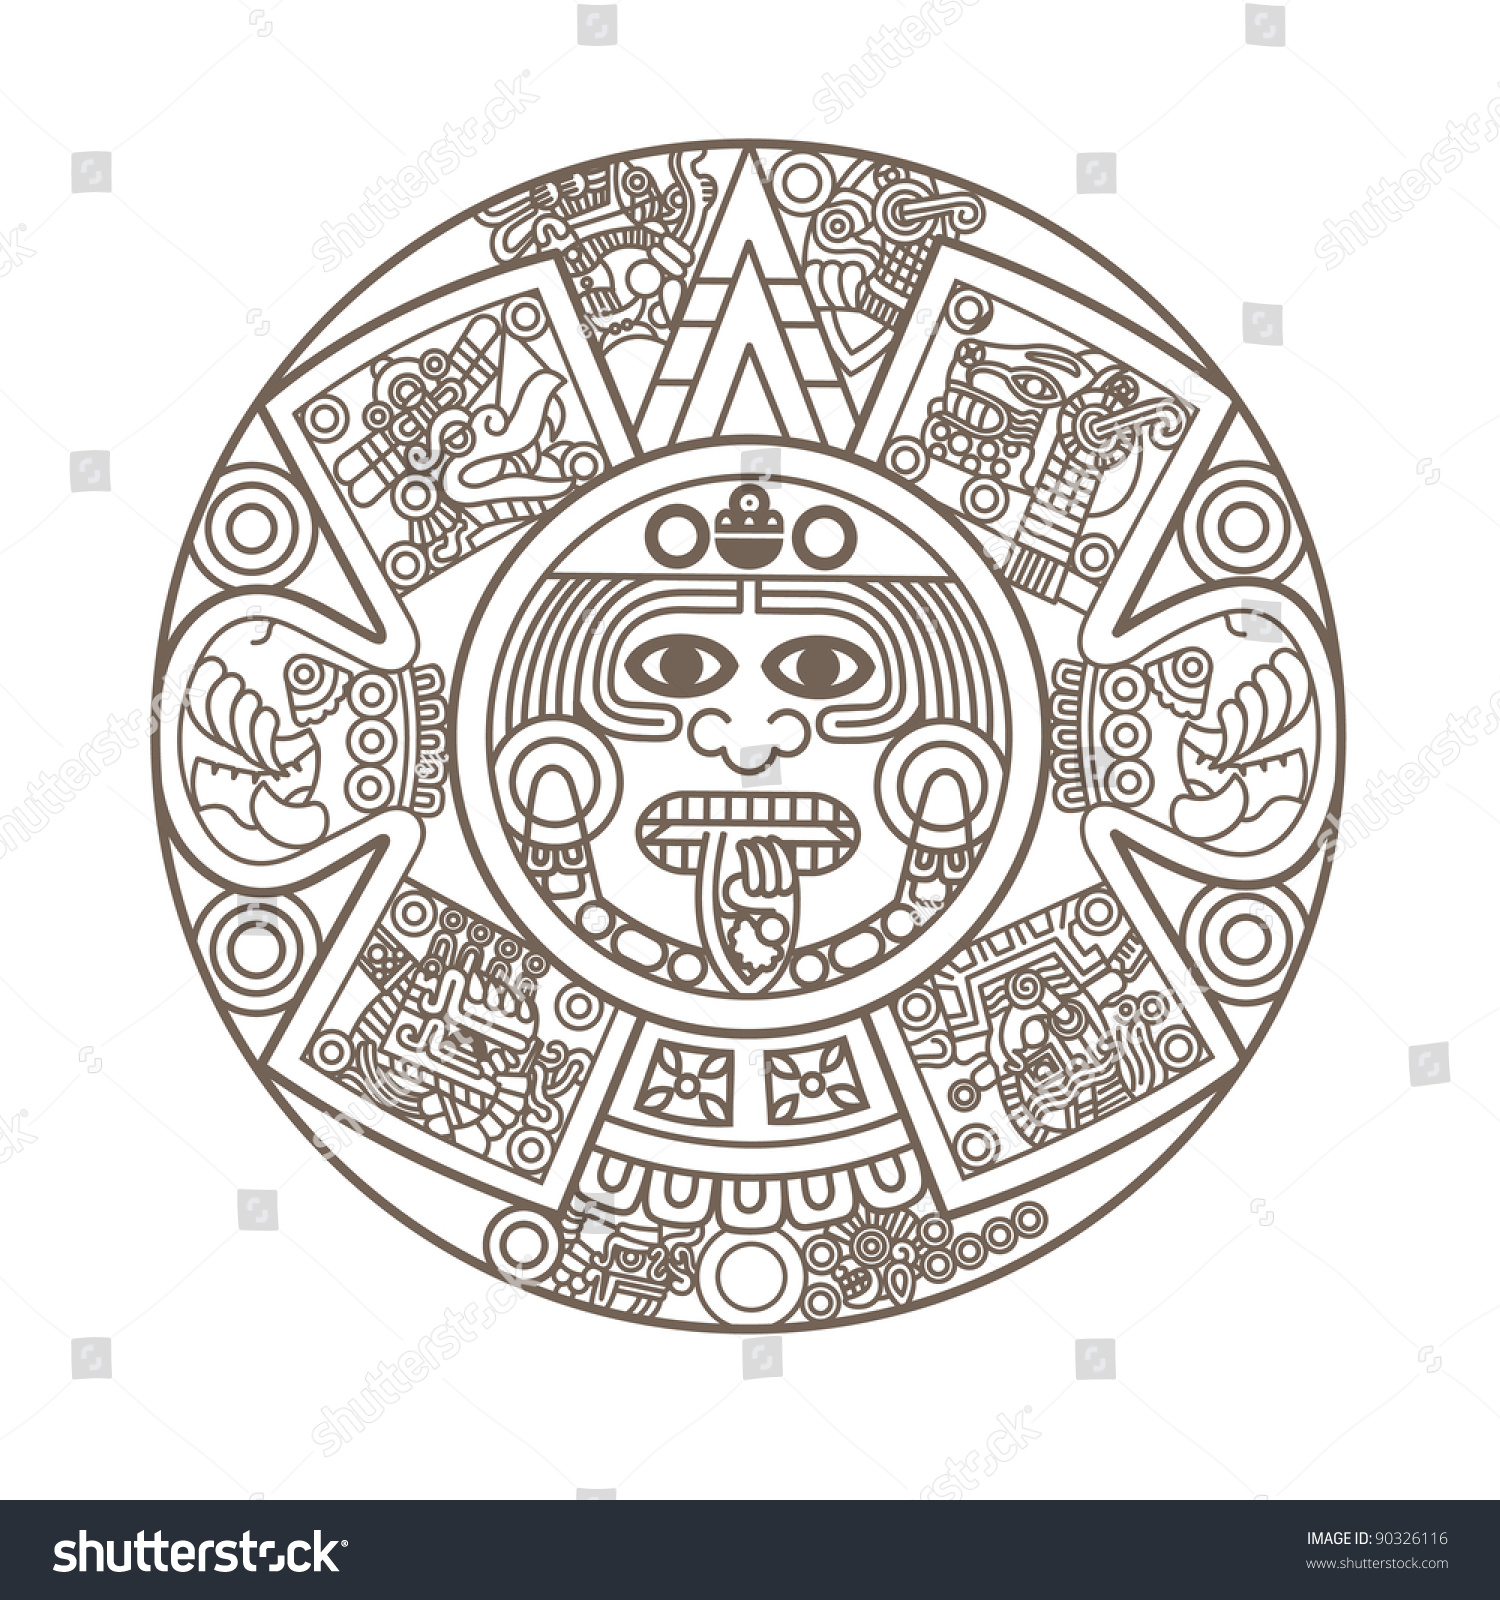 Calendar Illustration Vector : Stylized aztec calendar gold color vector stock